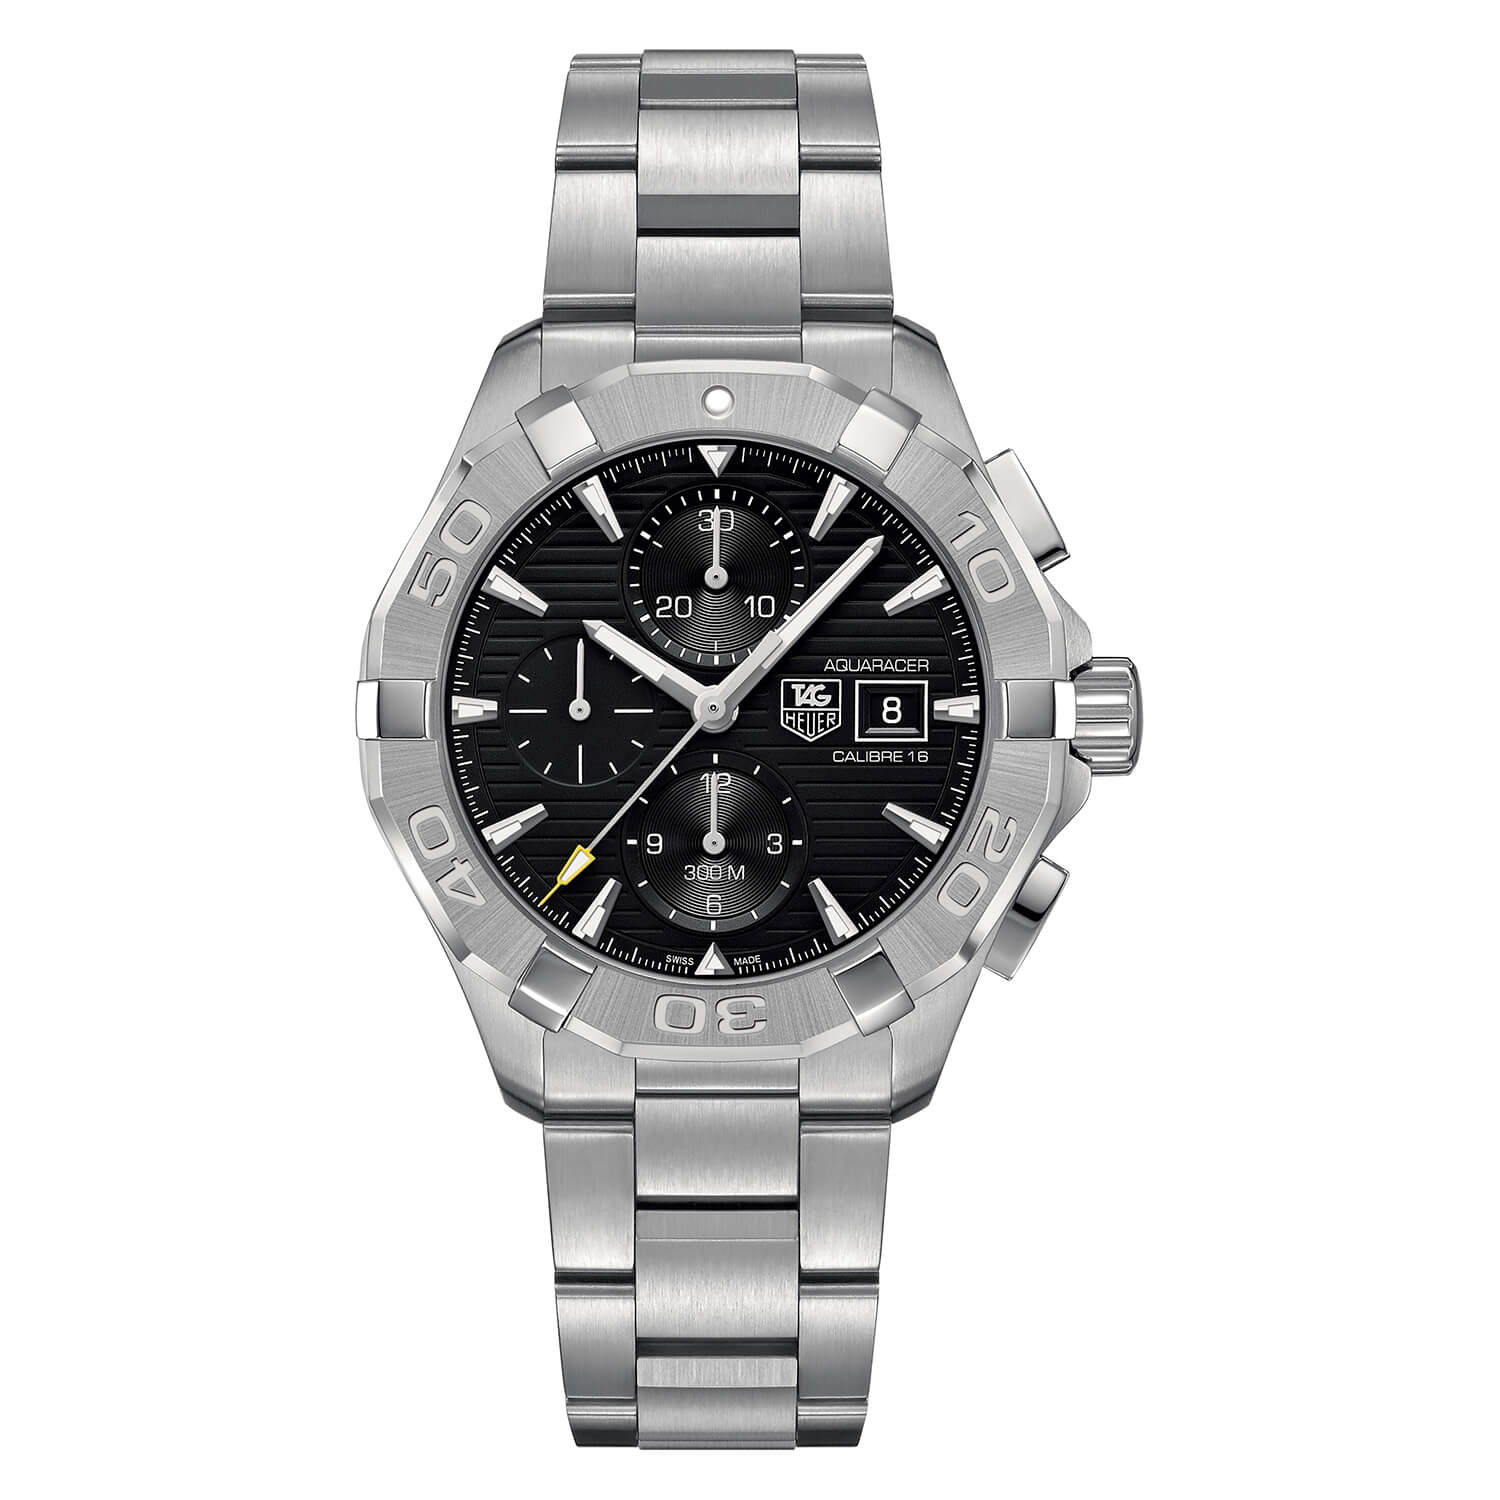 TAG Heuer Aquaracer automatic chronograph men's black dial stainless steel bracelet watch